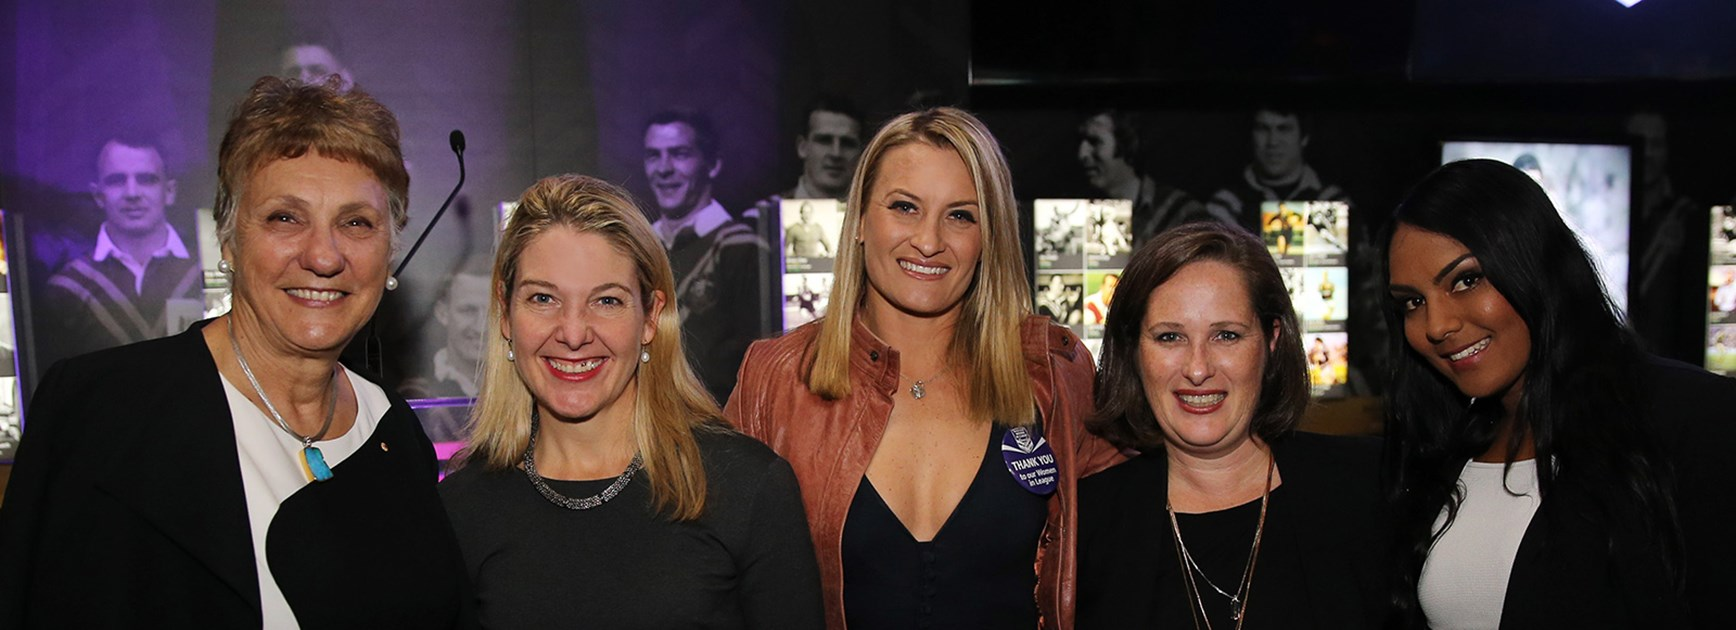 Catherine Harris, Suzanne Young, Ruan Sims, Stephanie Crockford and Mahalia Murphy at the Rugby League Museum.